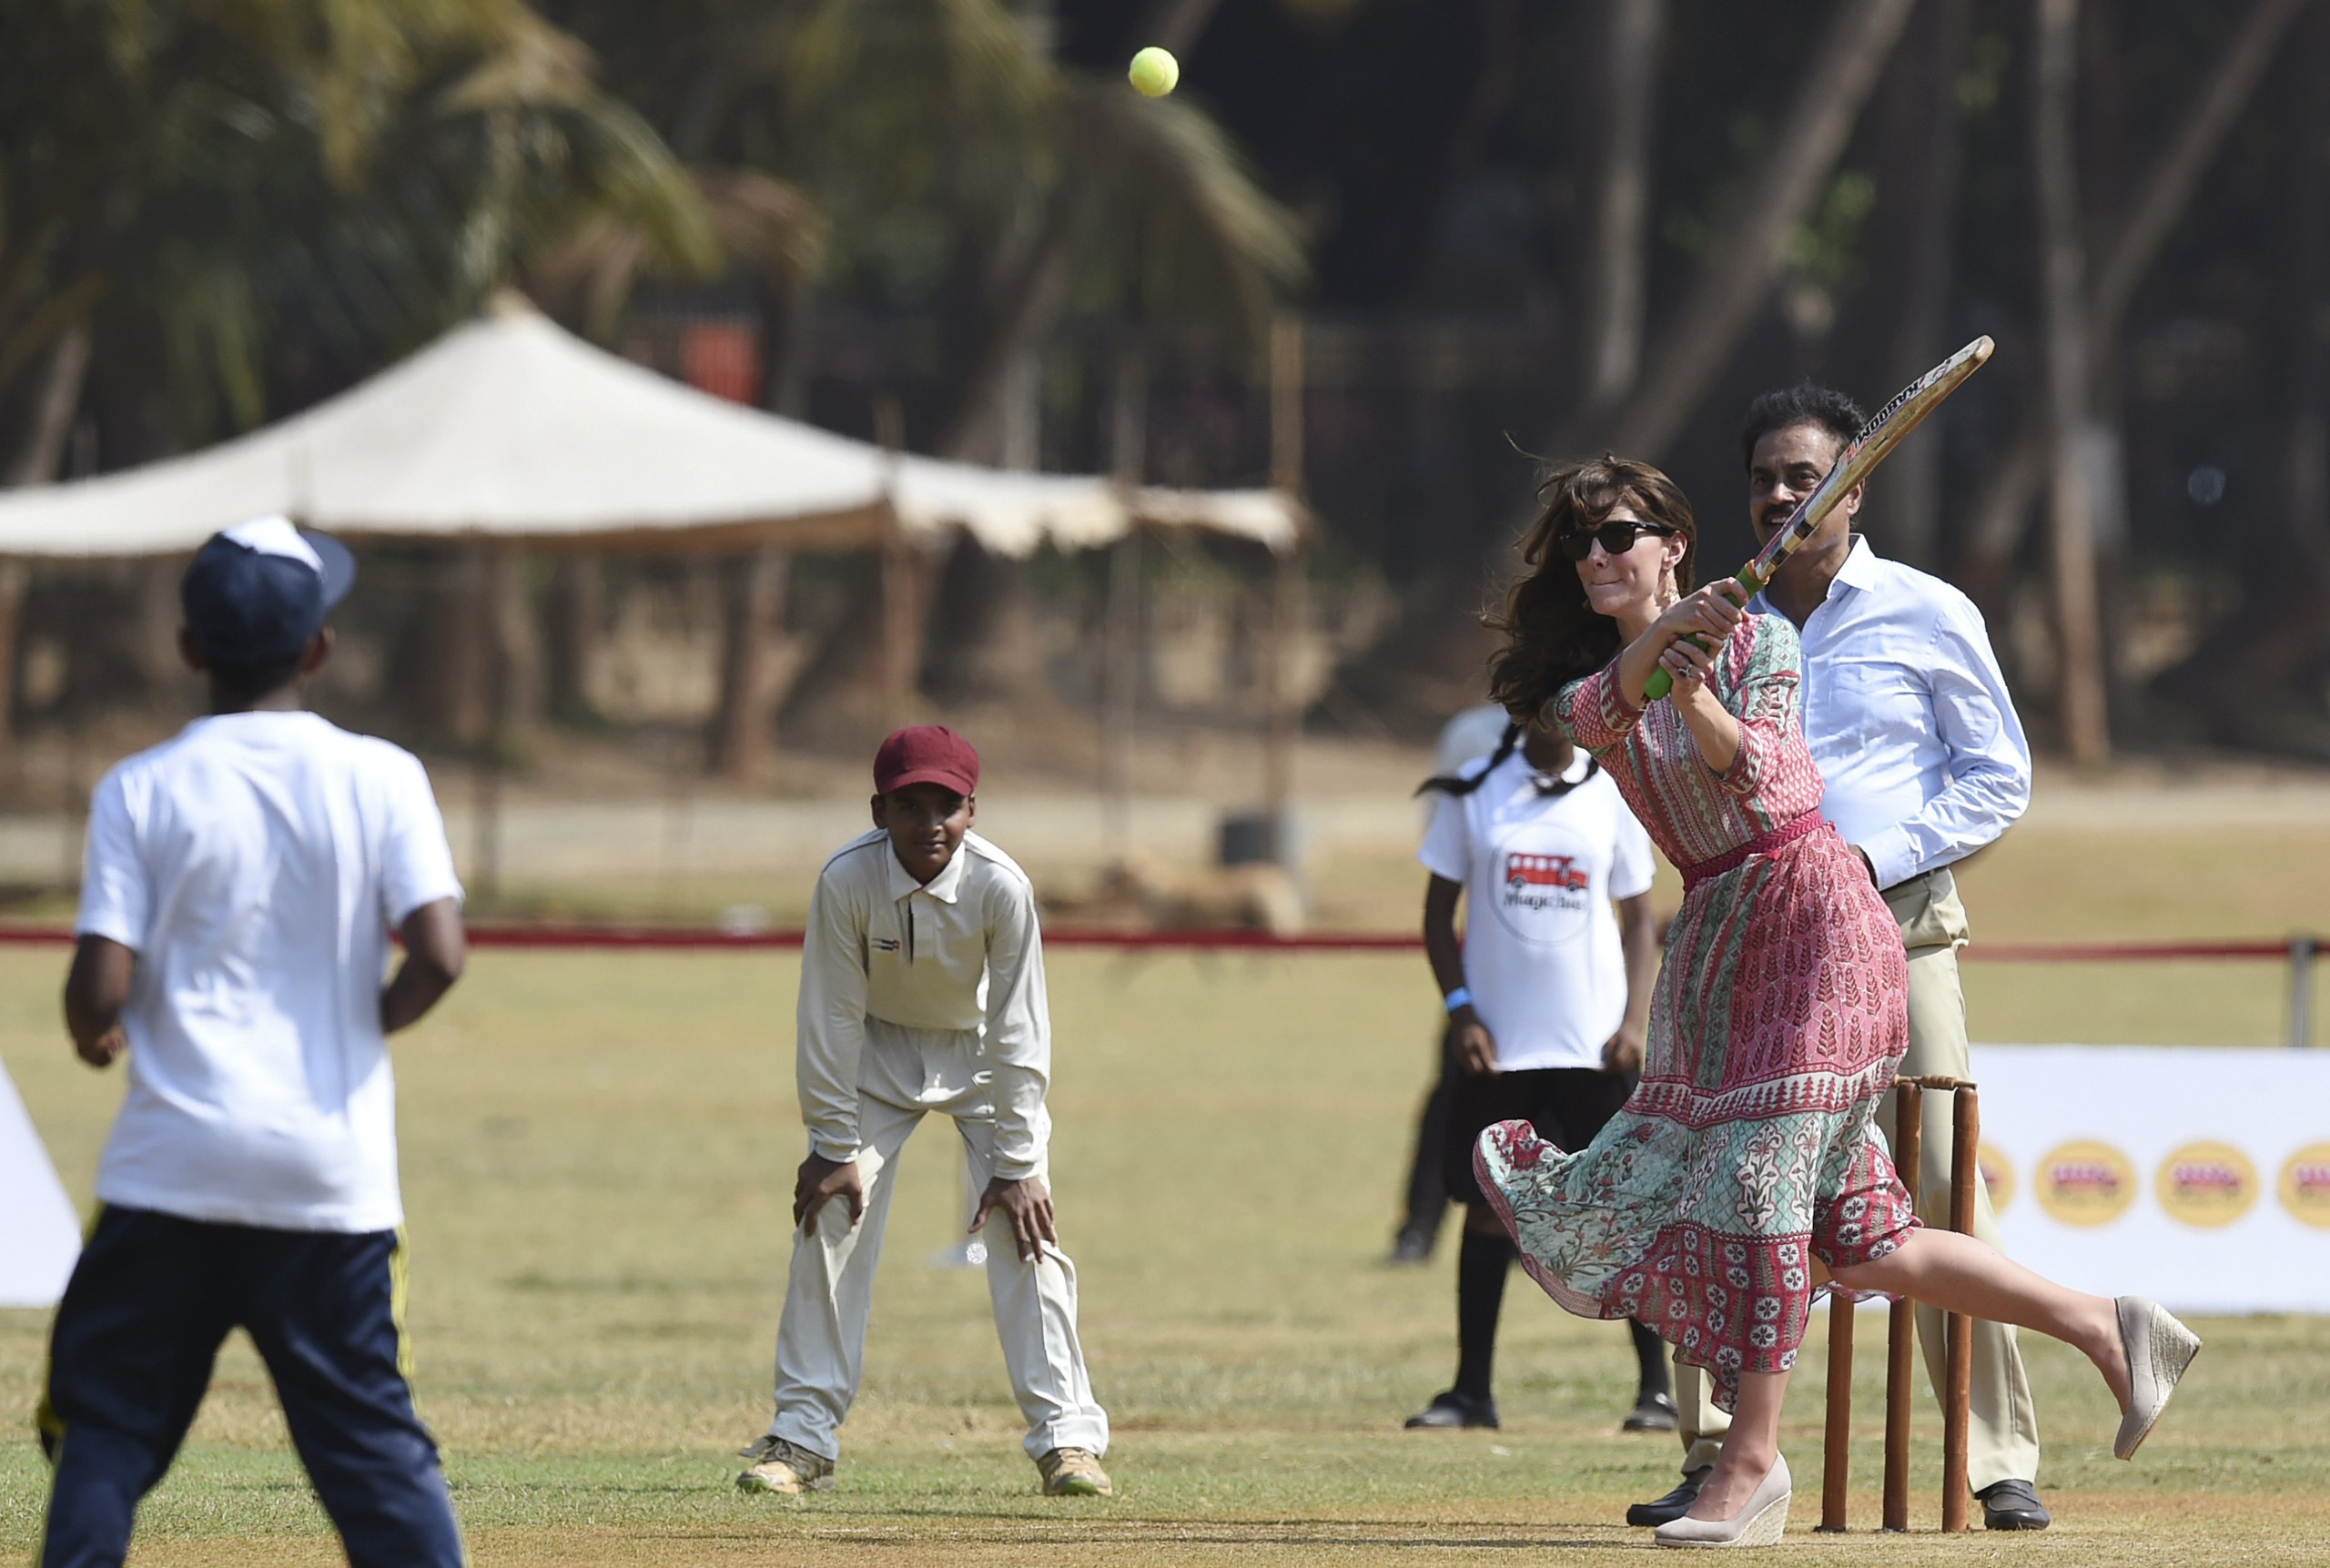 Catherine, Duchess of Cambridge (C), is watched by former Indian cricketer Dilip Vengsarkar (R) as she and Britain's Prince William play a game of cricket with Indian children, who are beneficiaries of NGOs, at the Oval Maidan in Mumbai April 10, 2016. REUTERS/Indranil Mukherjee/Pool